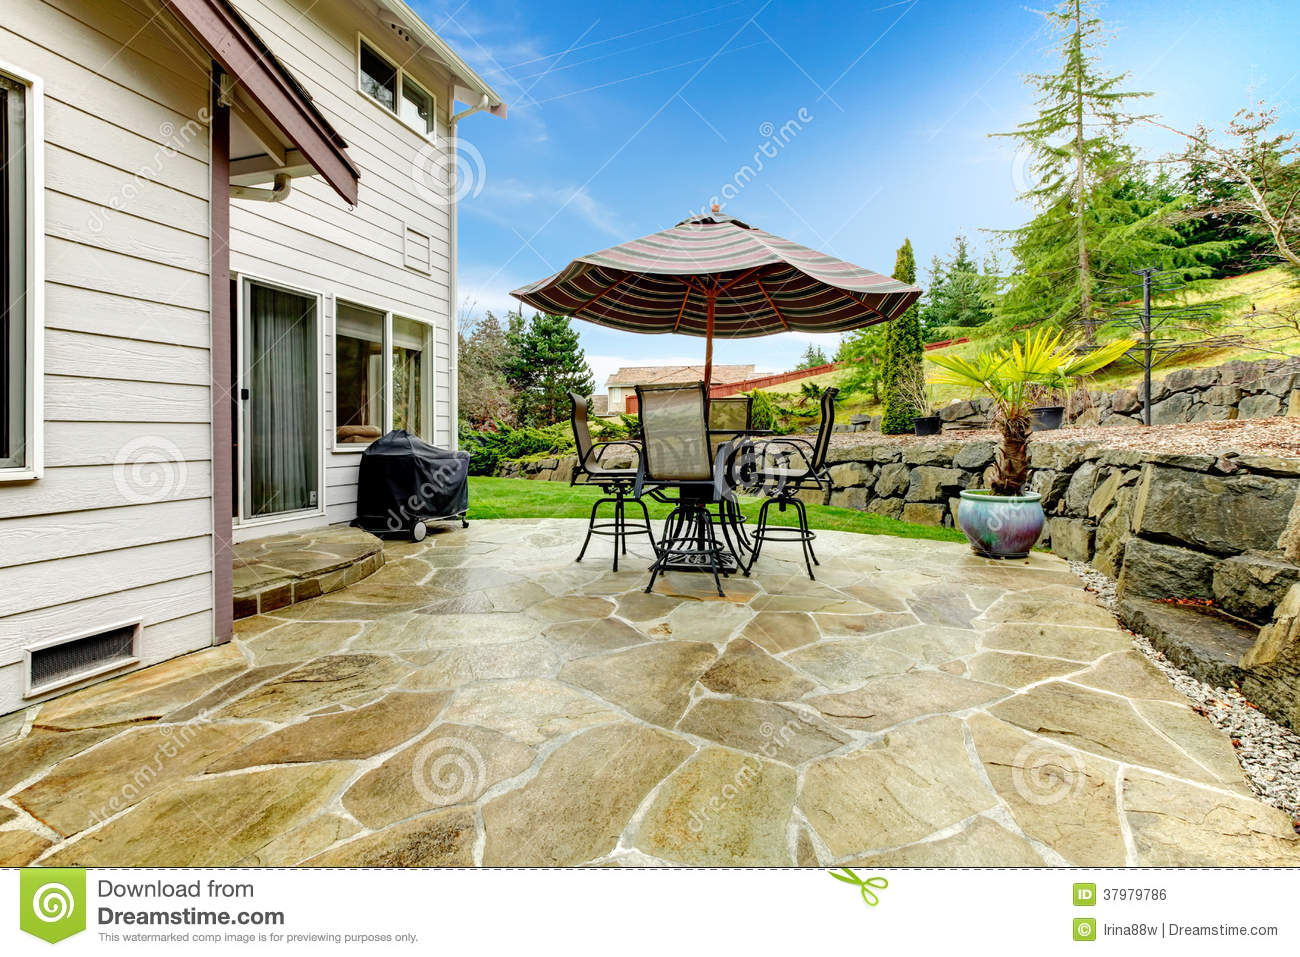 Home patio area overlooking beautiful landscaping royalty for Patio and terrace